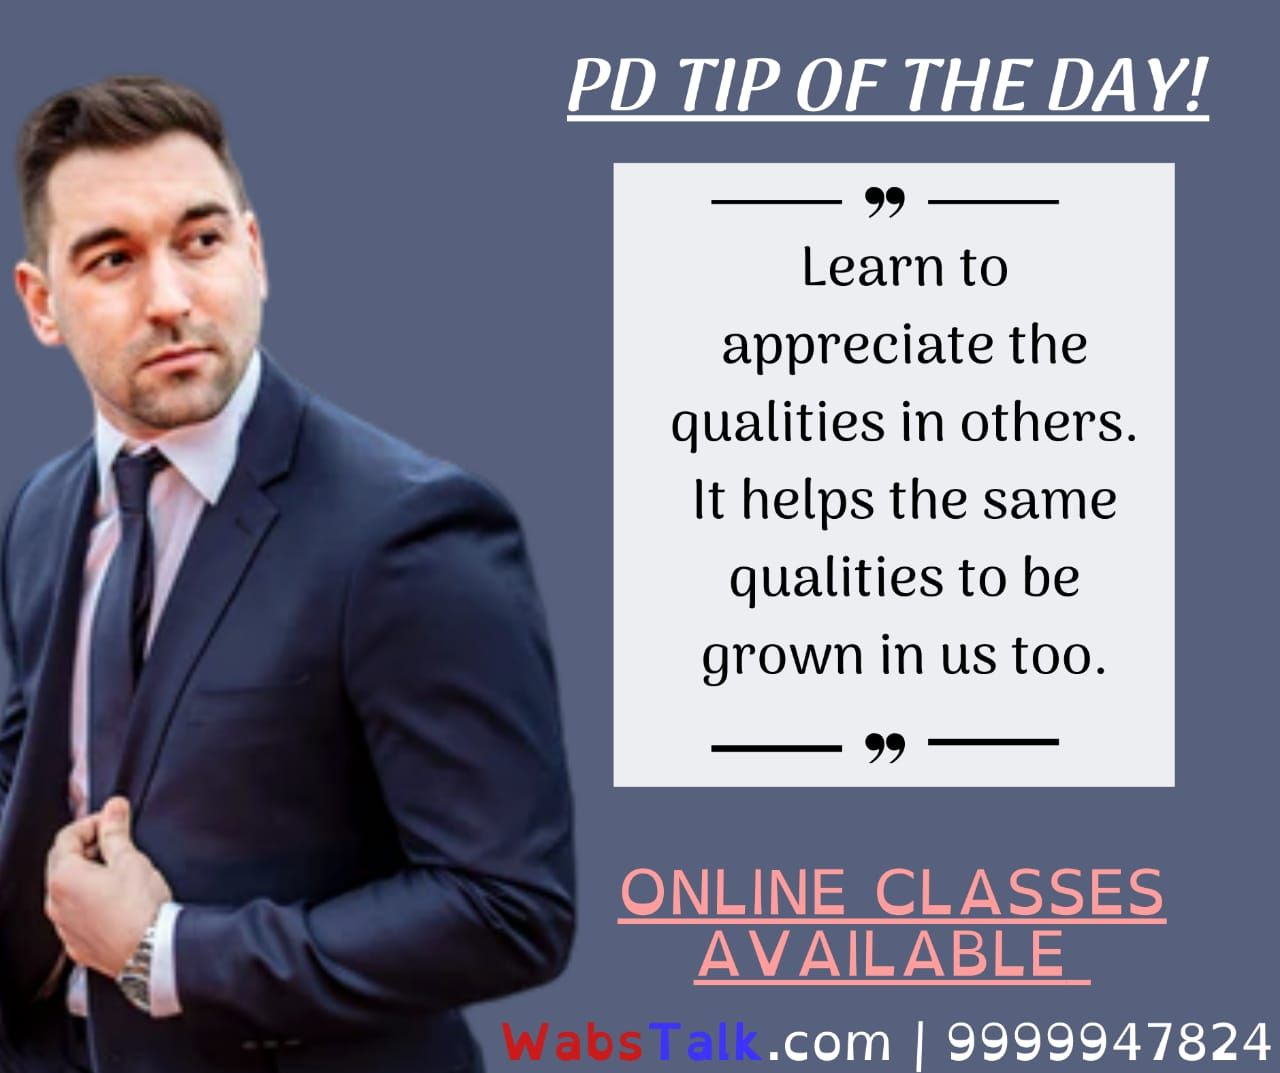 (#Join: 9999947824)  Personality Development Tip of the Day!  Learn to appreciate the qualities in others. It helps the same qualities to be grown in us too.  Note: Online Soft Skills Sessions Available.  #website: wabstalk.com  #lesson #lessonlearned #lessonslearned #lessons #lessonslearnedinlife #lessonoftheday #lessonsoflife #lessonsinlife #lifelesson #lessonlearnt #personalitydevelopment #betteryou #onlineclass